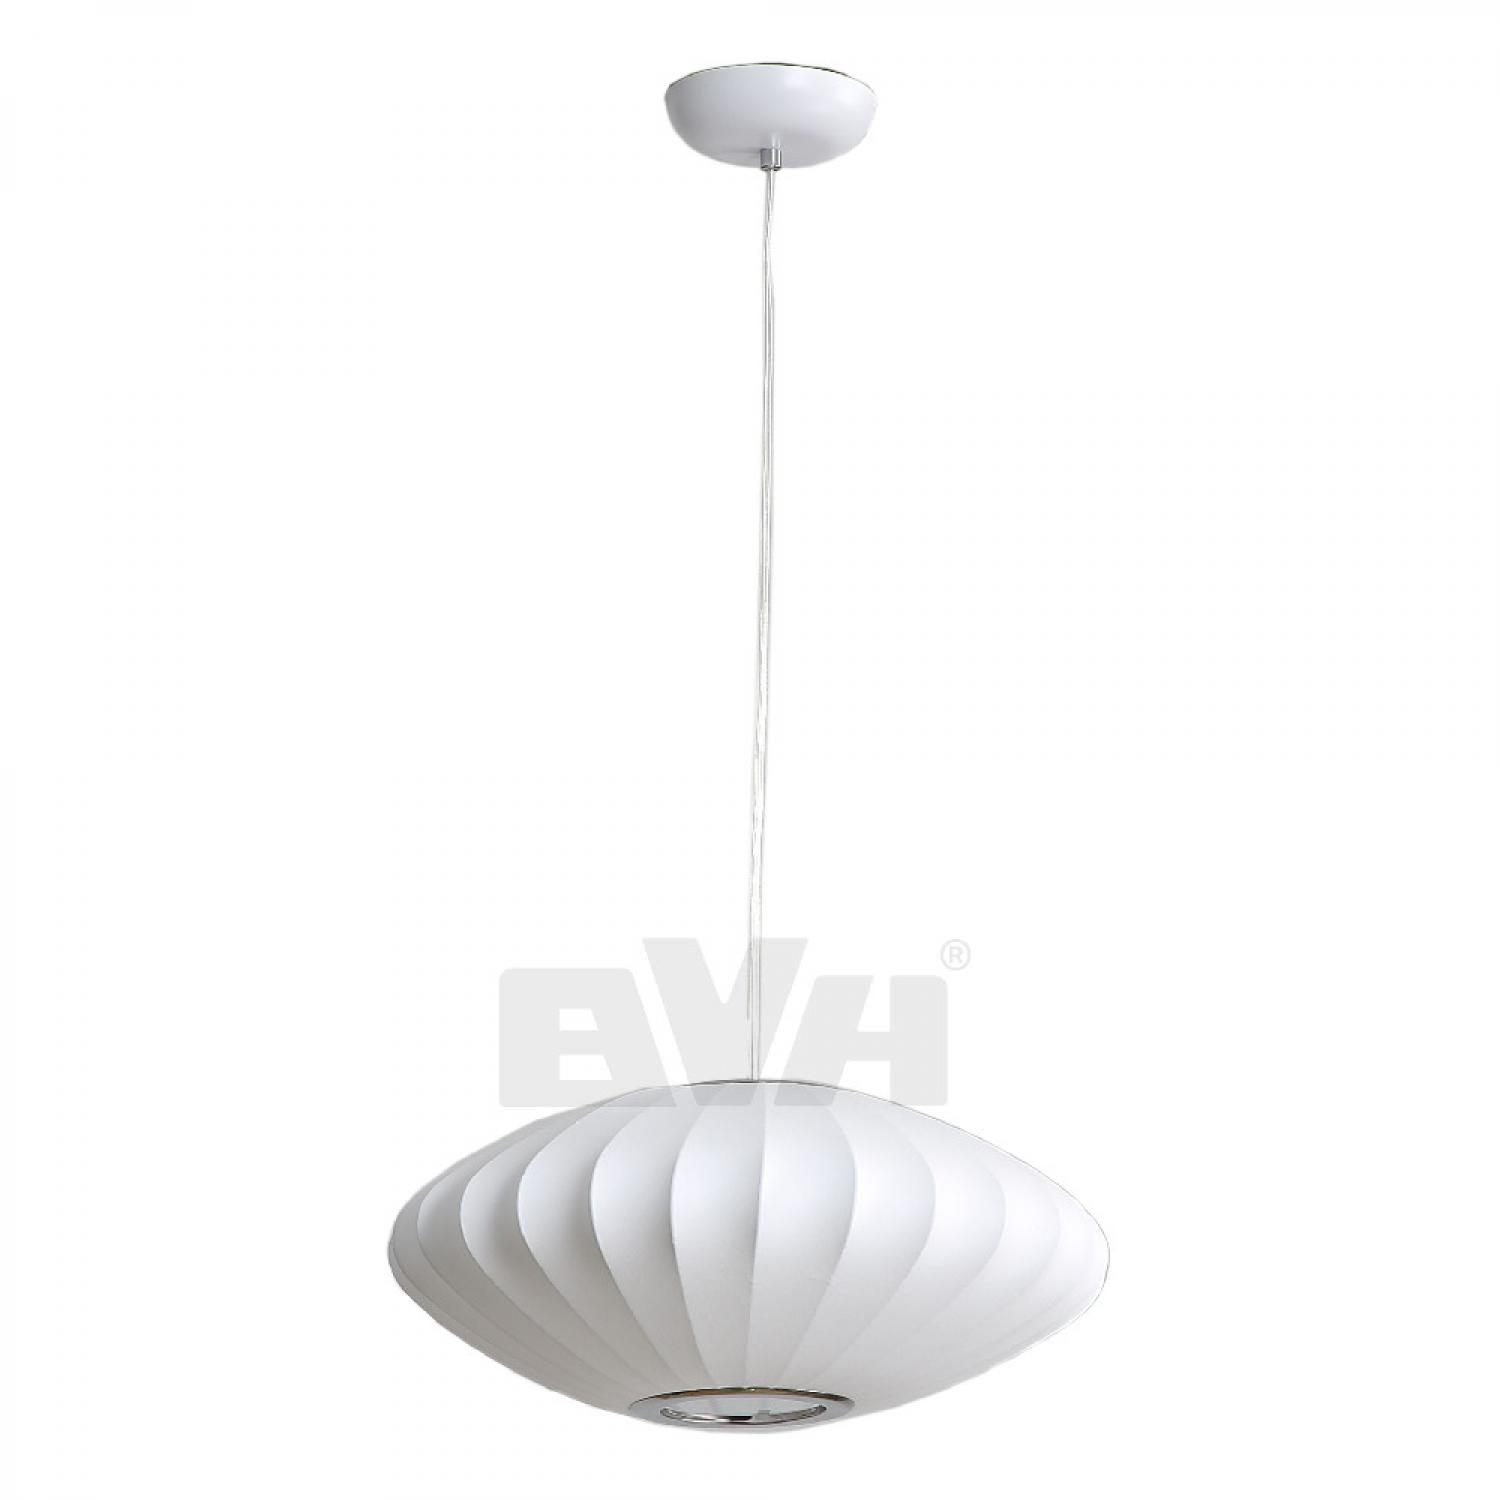 BVH Modern Bubble Lamp Saucer Pendant increase george nelson Design